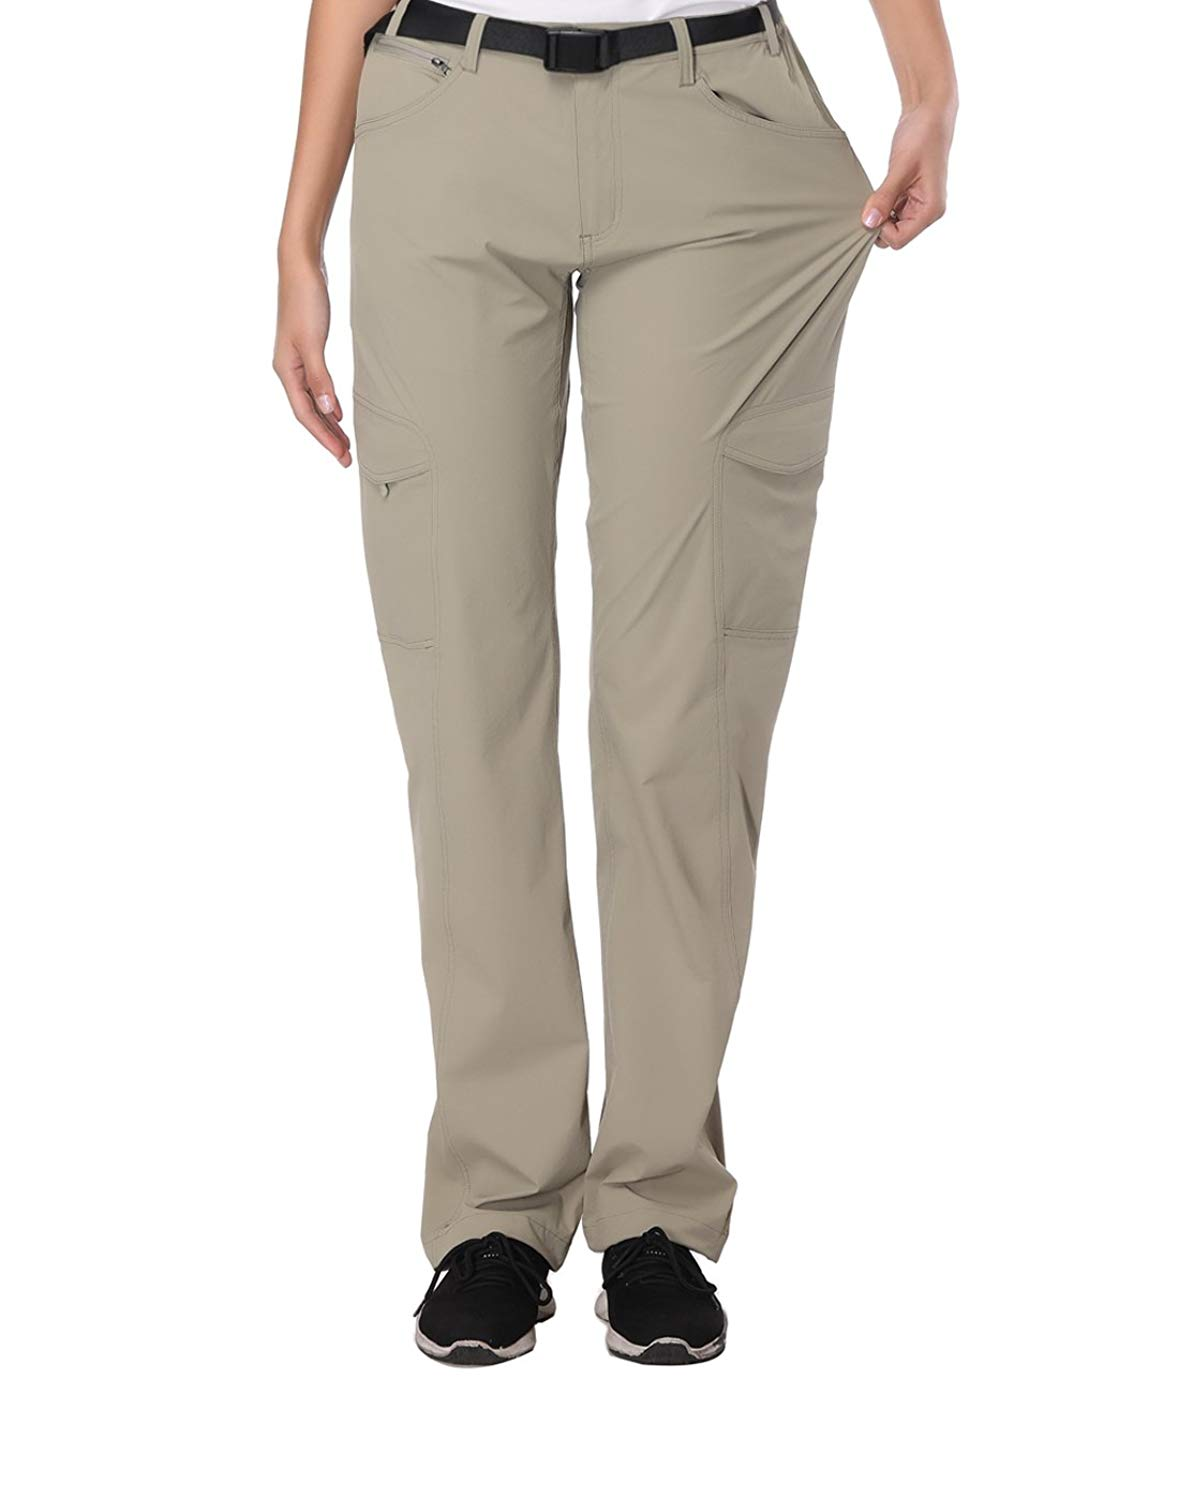 INVOLAND Womens Hiking Pants Outdoor Quick Drying Cargo Pants Lightweight Pants Elstic Waist